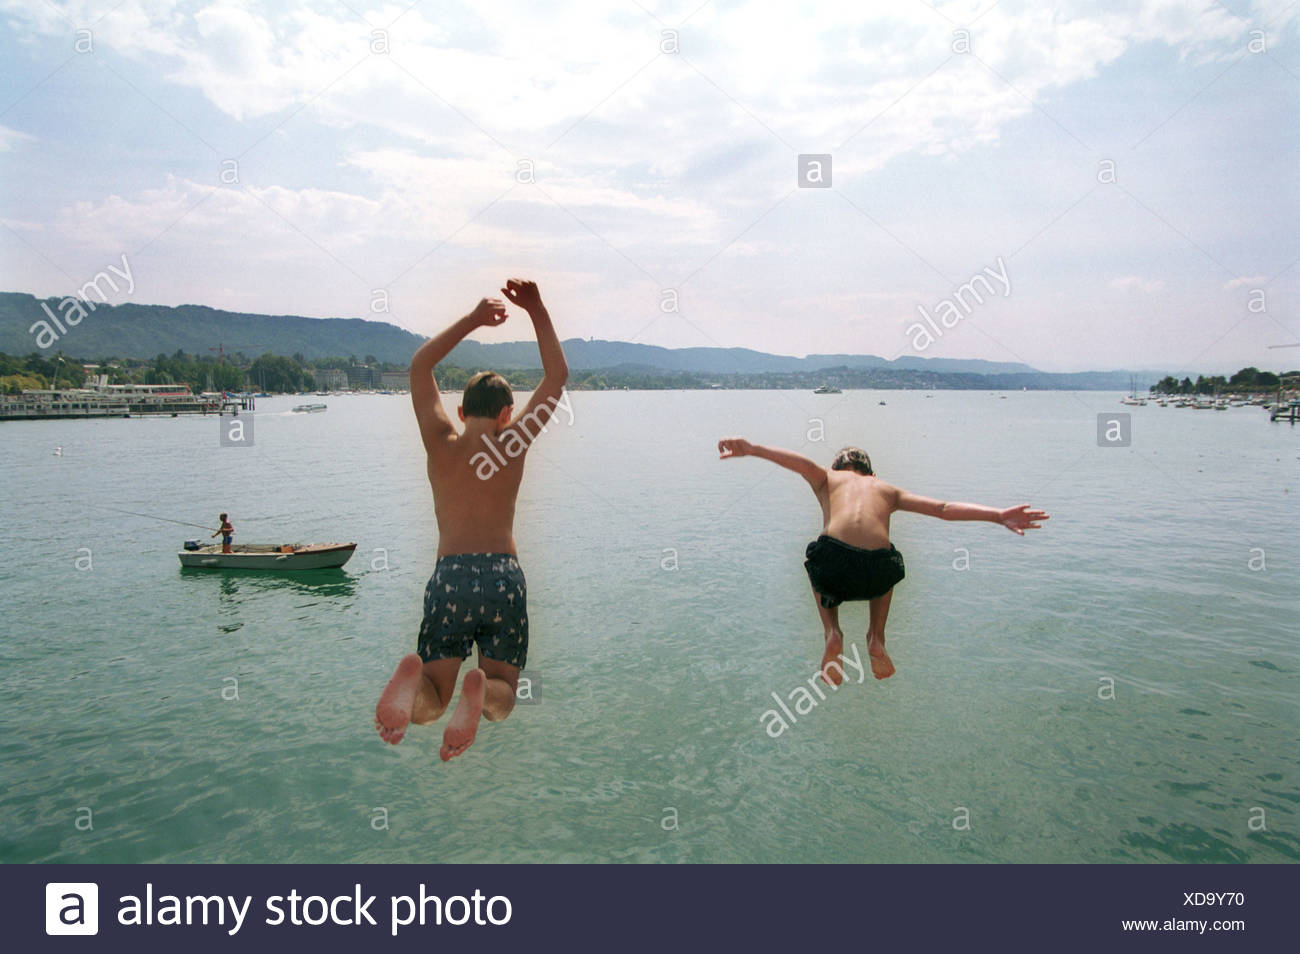 Boys jump from the Quaibrücke in Zuerichsee - Stock Image